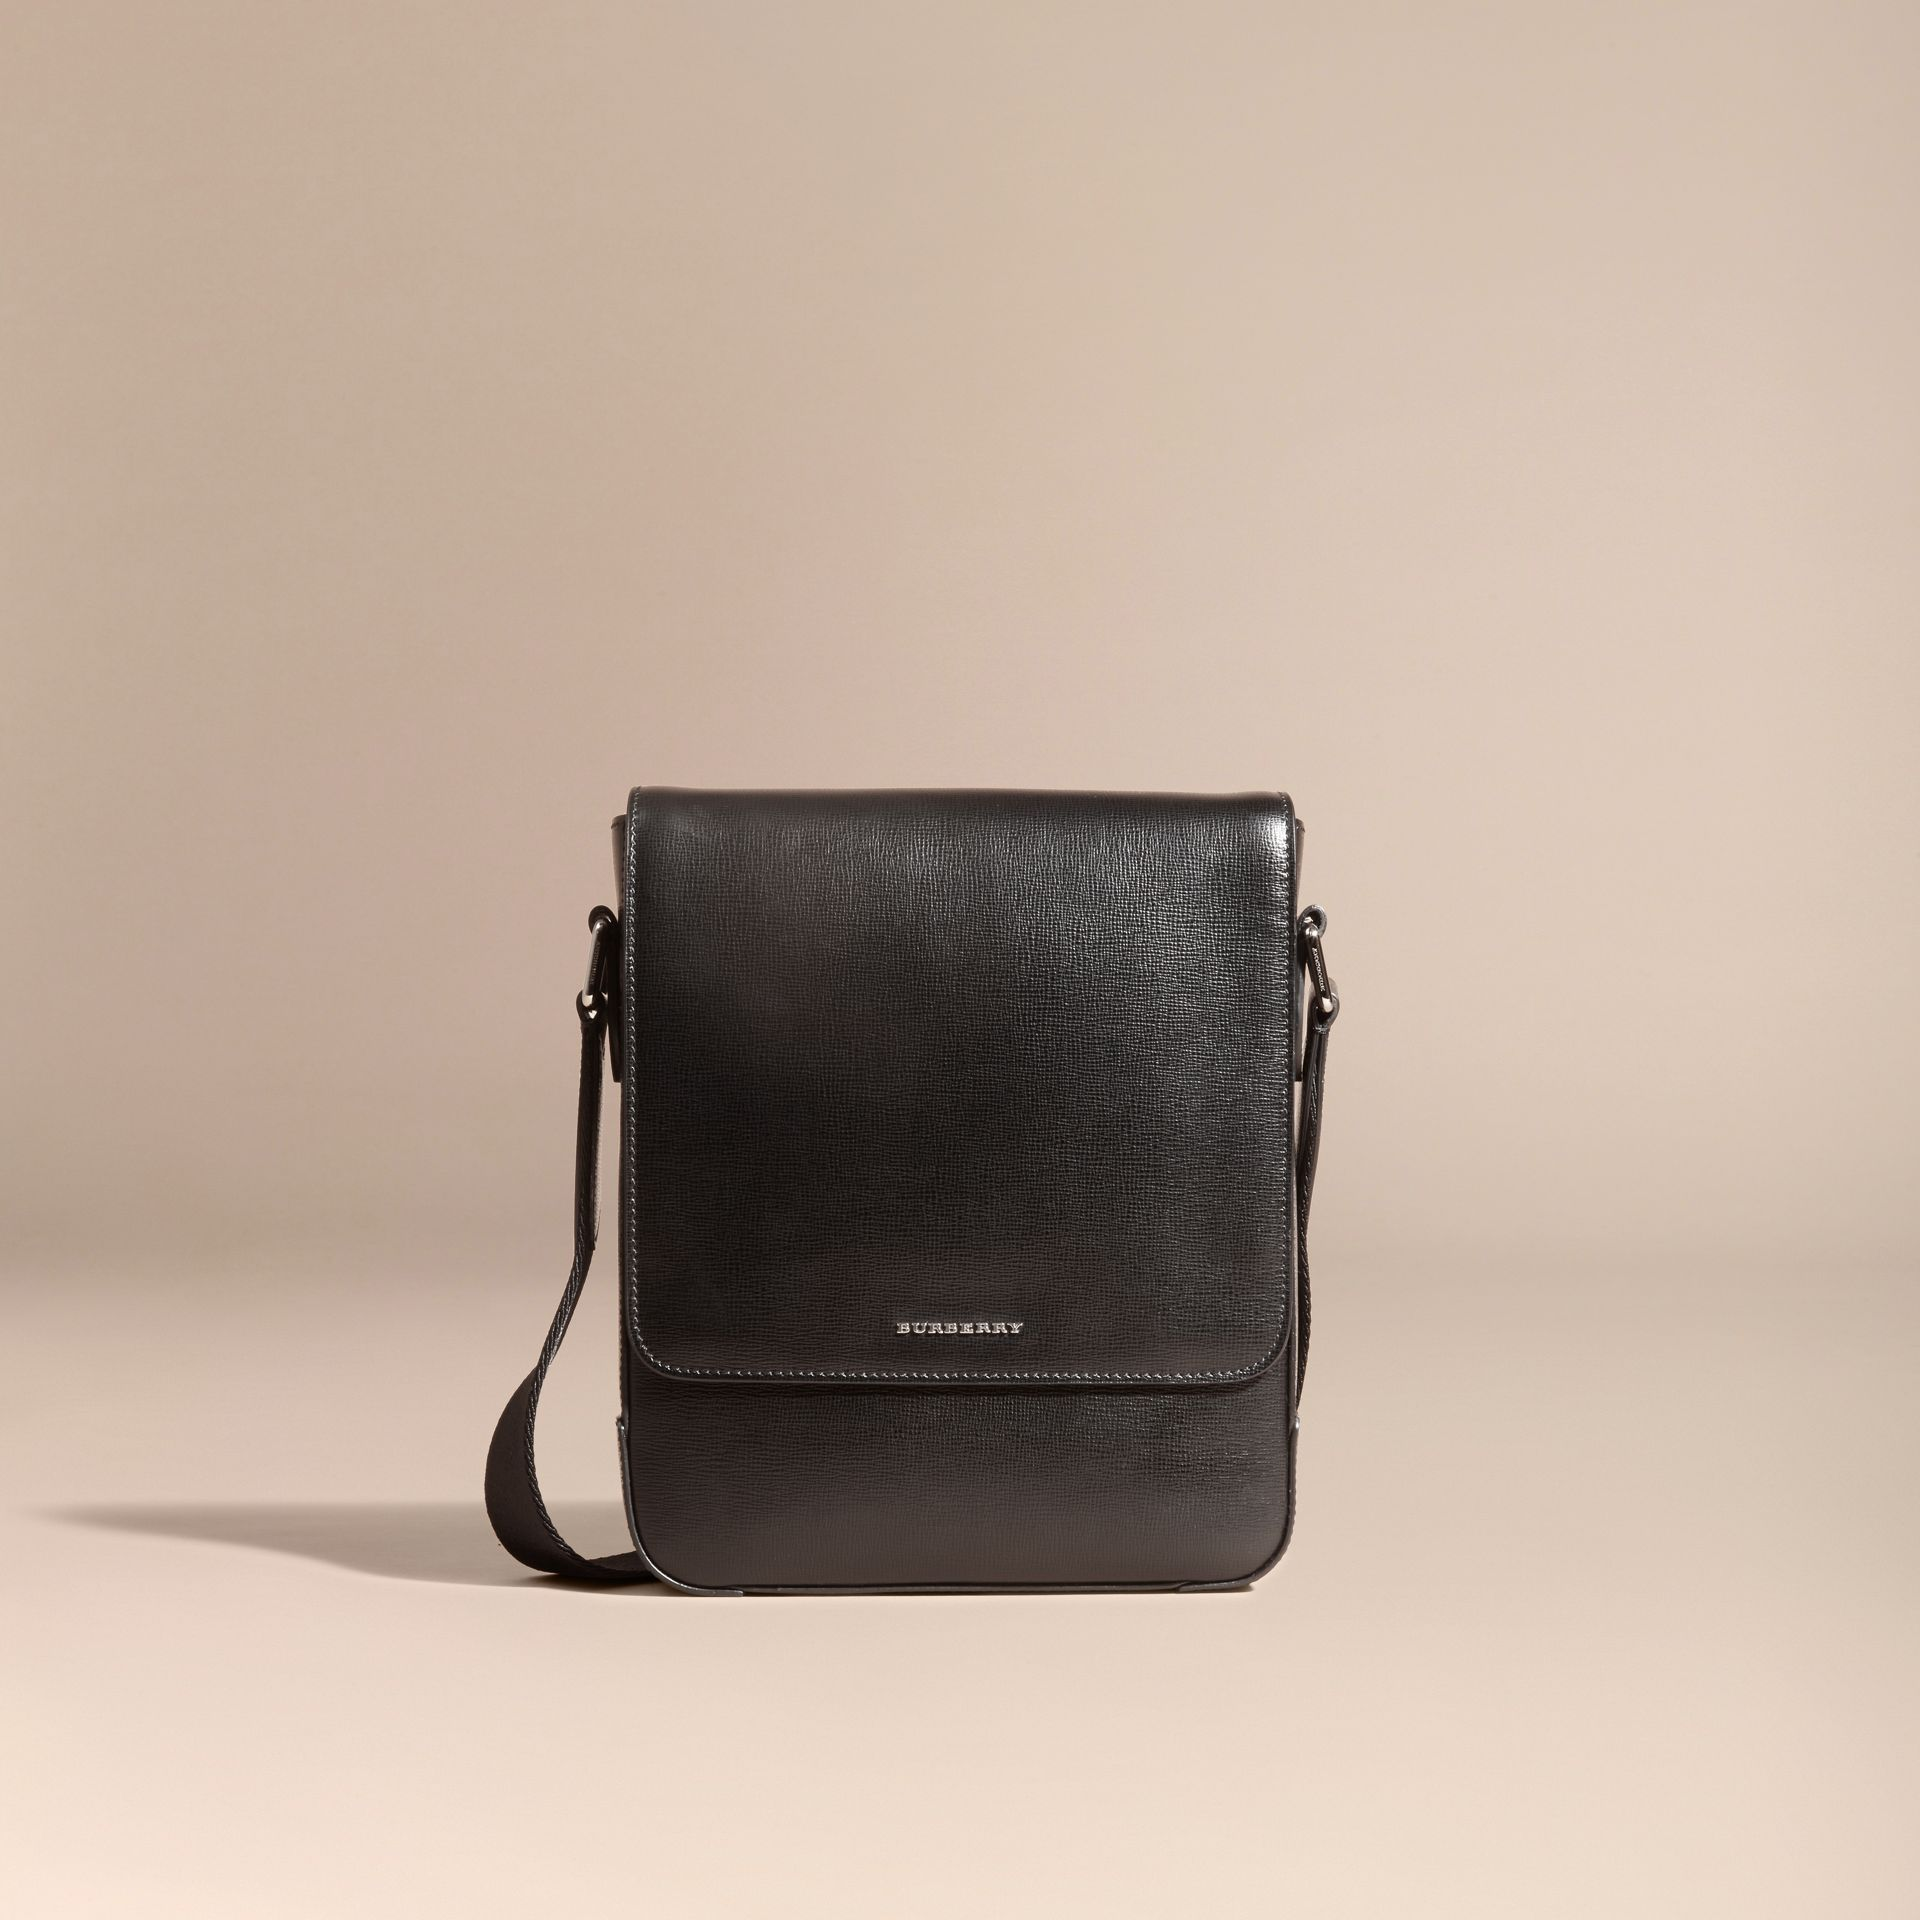 Noir Sac à bandoulière en cuir London Noir - photo de la galerie 8